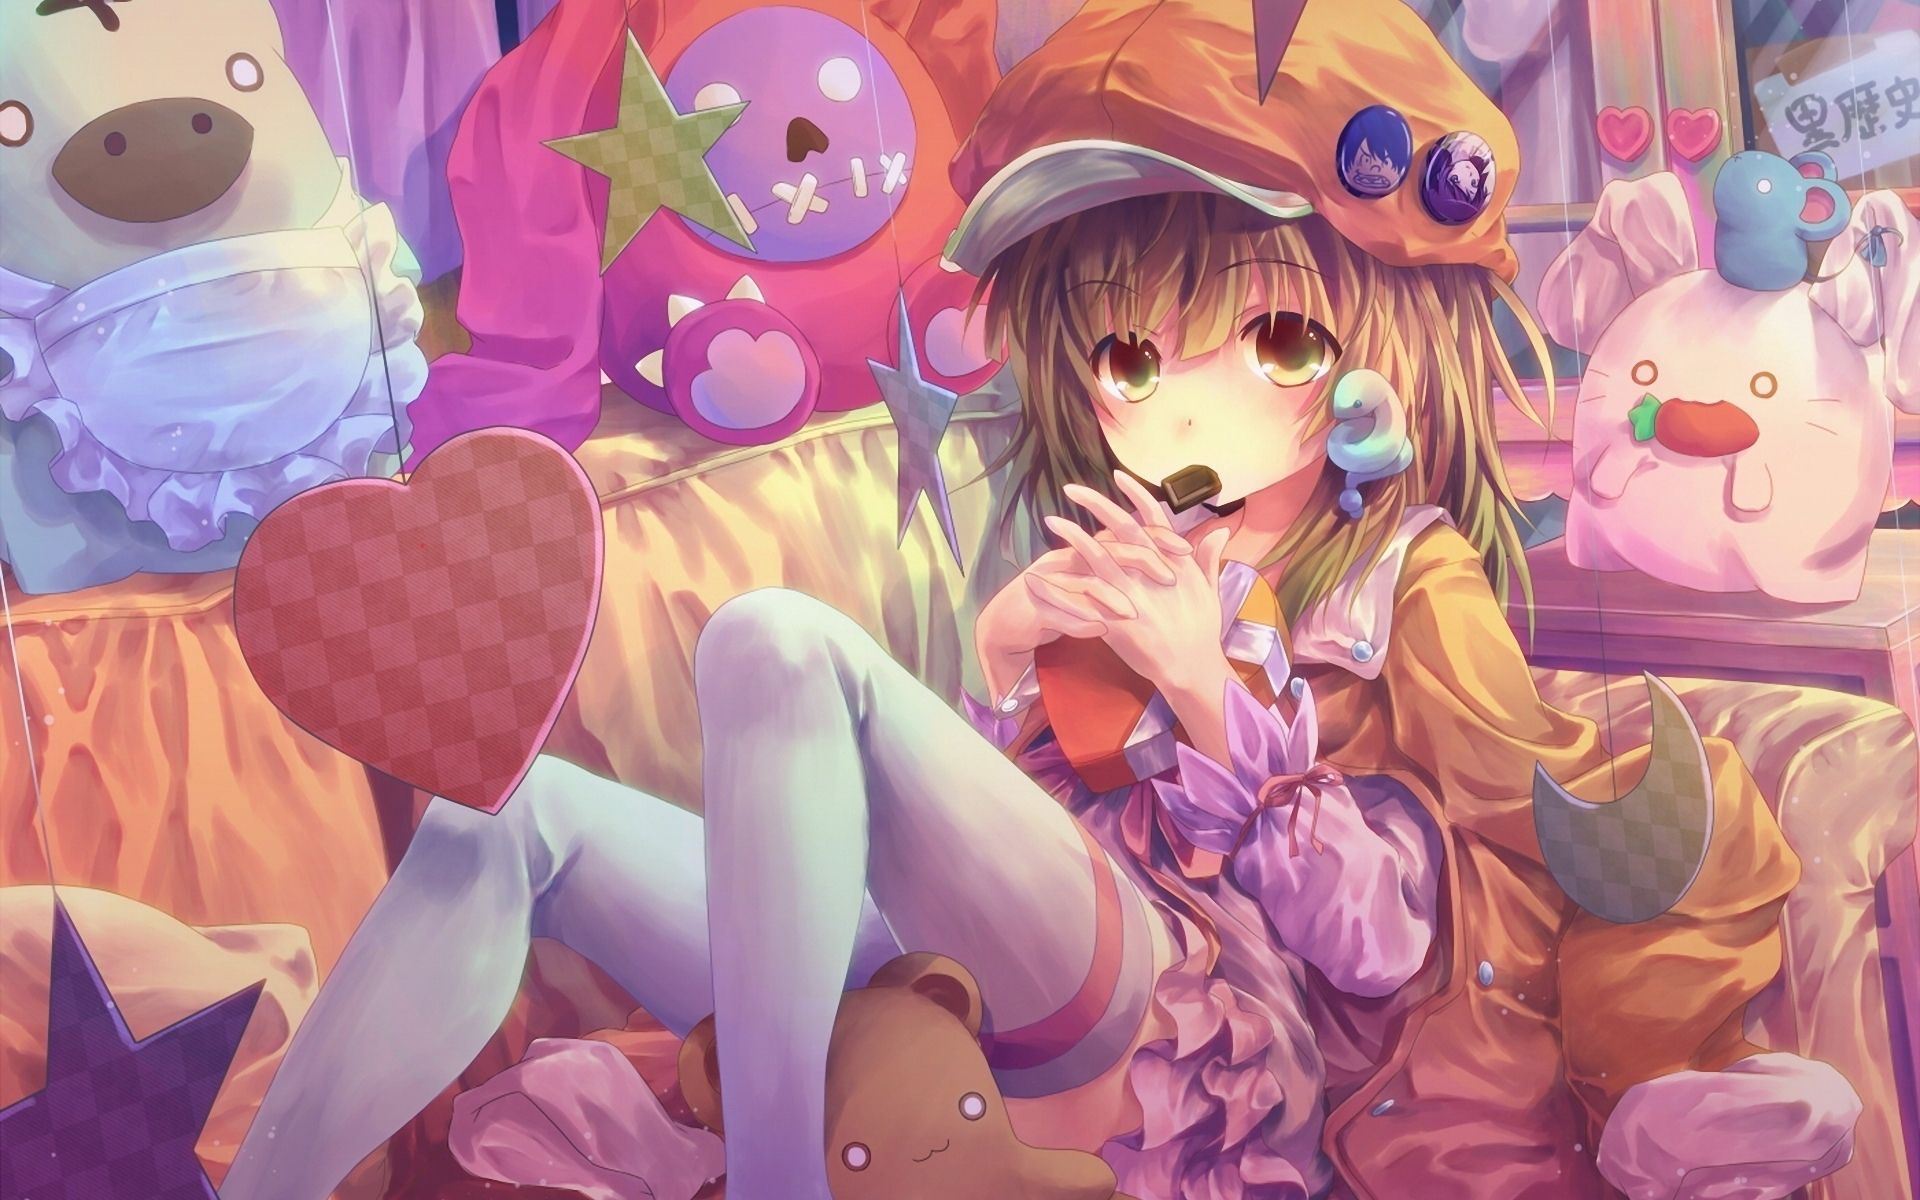 Cute Anime Girl Ps4 Wallpapers Wallpaper Cave